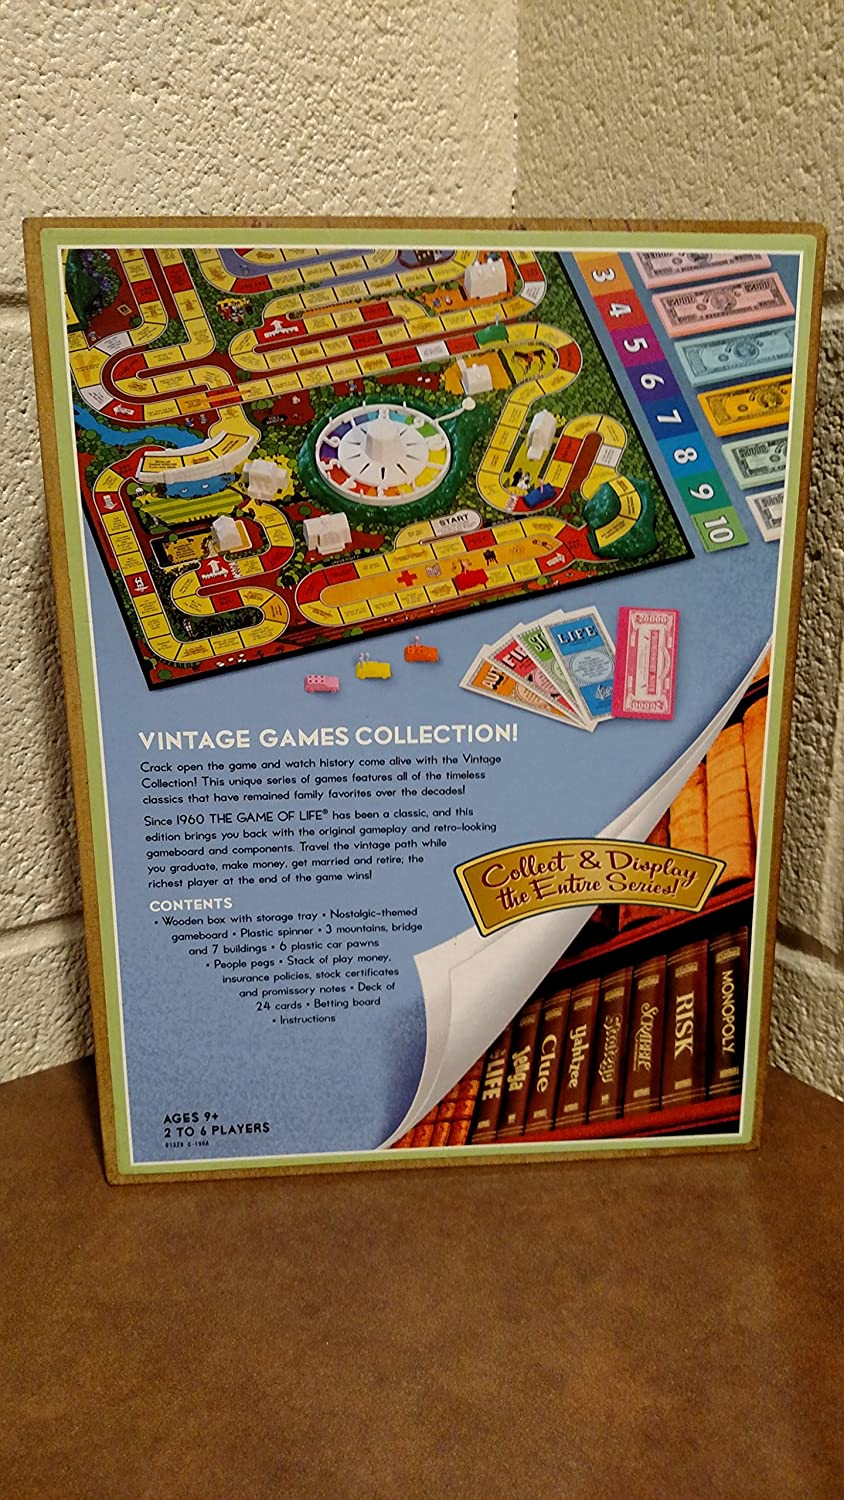 Library Life Vintage Book Game by Hasbro: Amazon.es: Juguetes y juegos